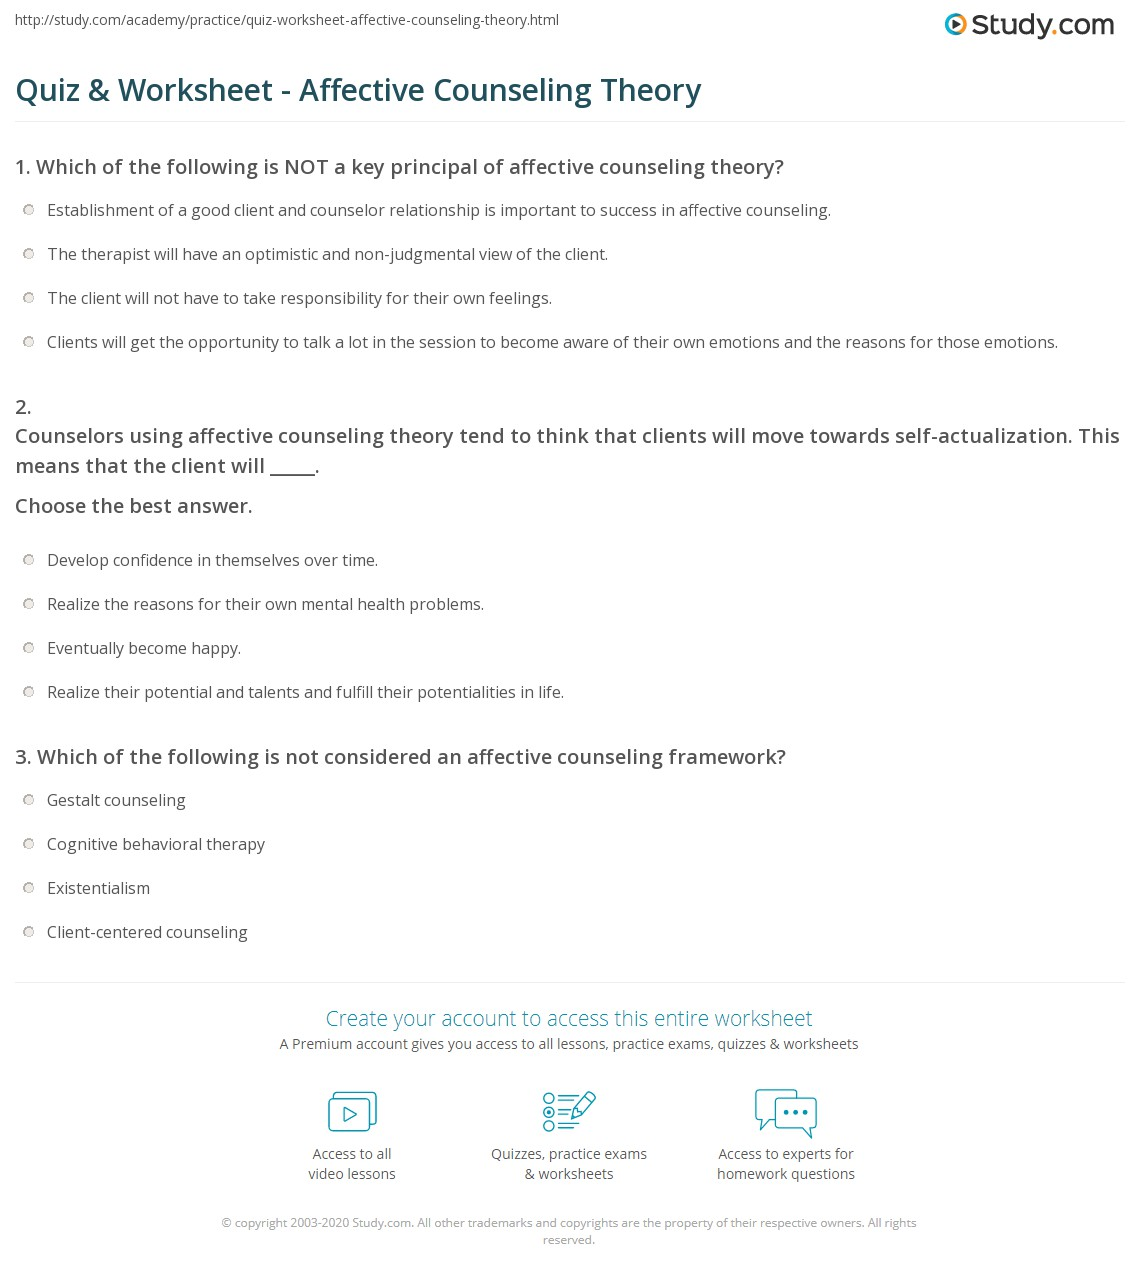 quiz worksheet affective counseling theory. Black Bedroom Furniture Sets. Home Design Ideas